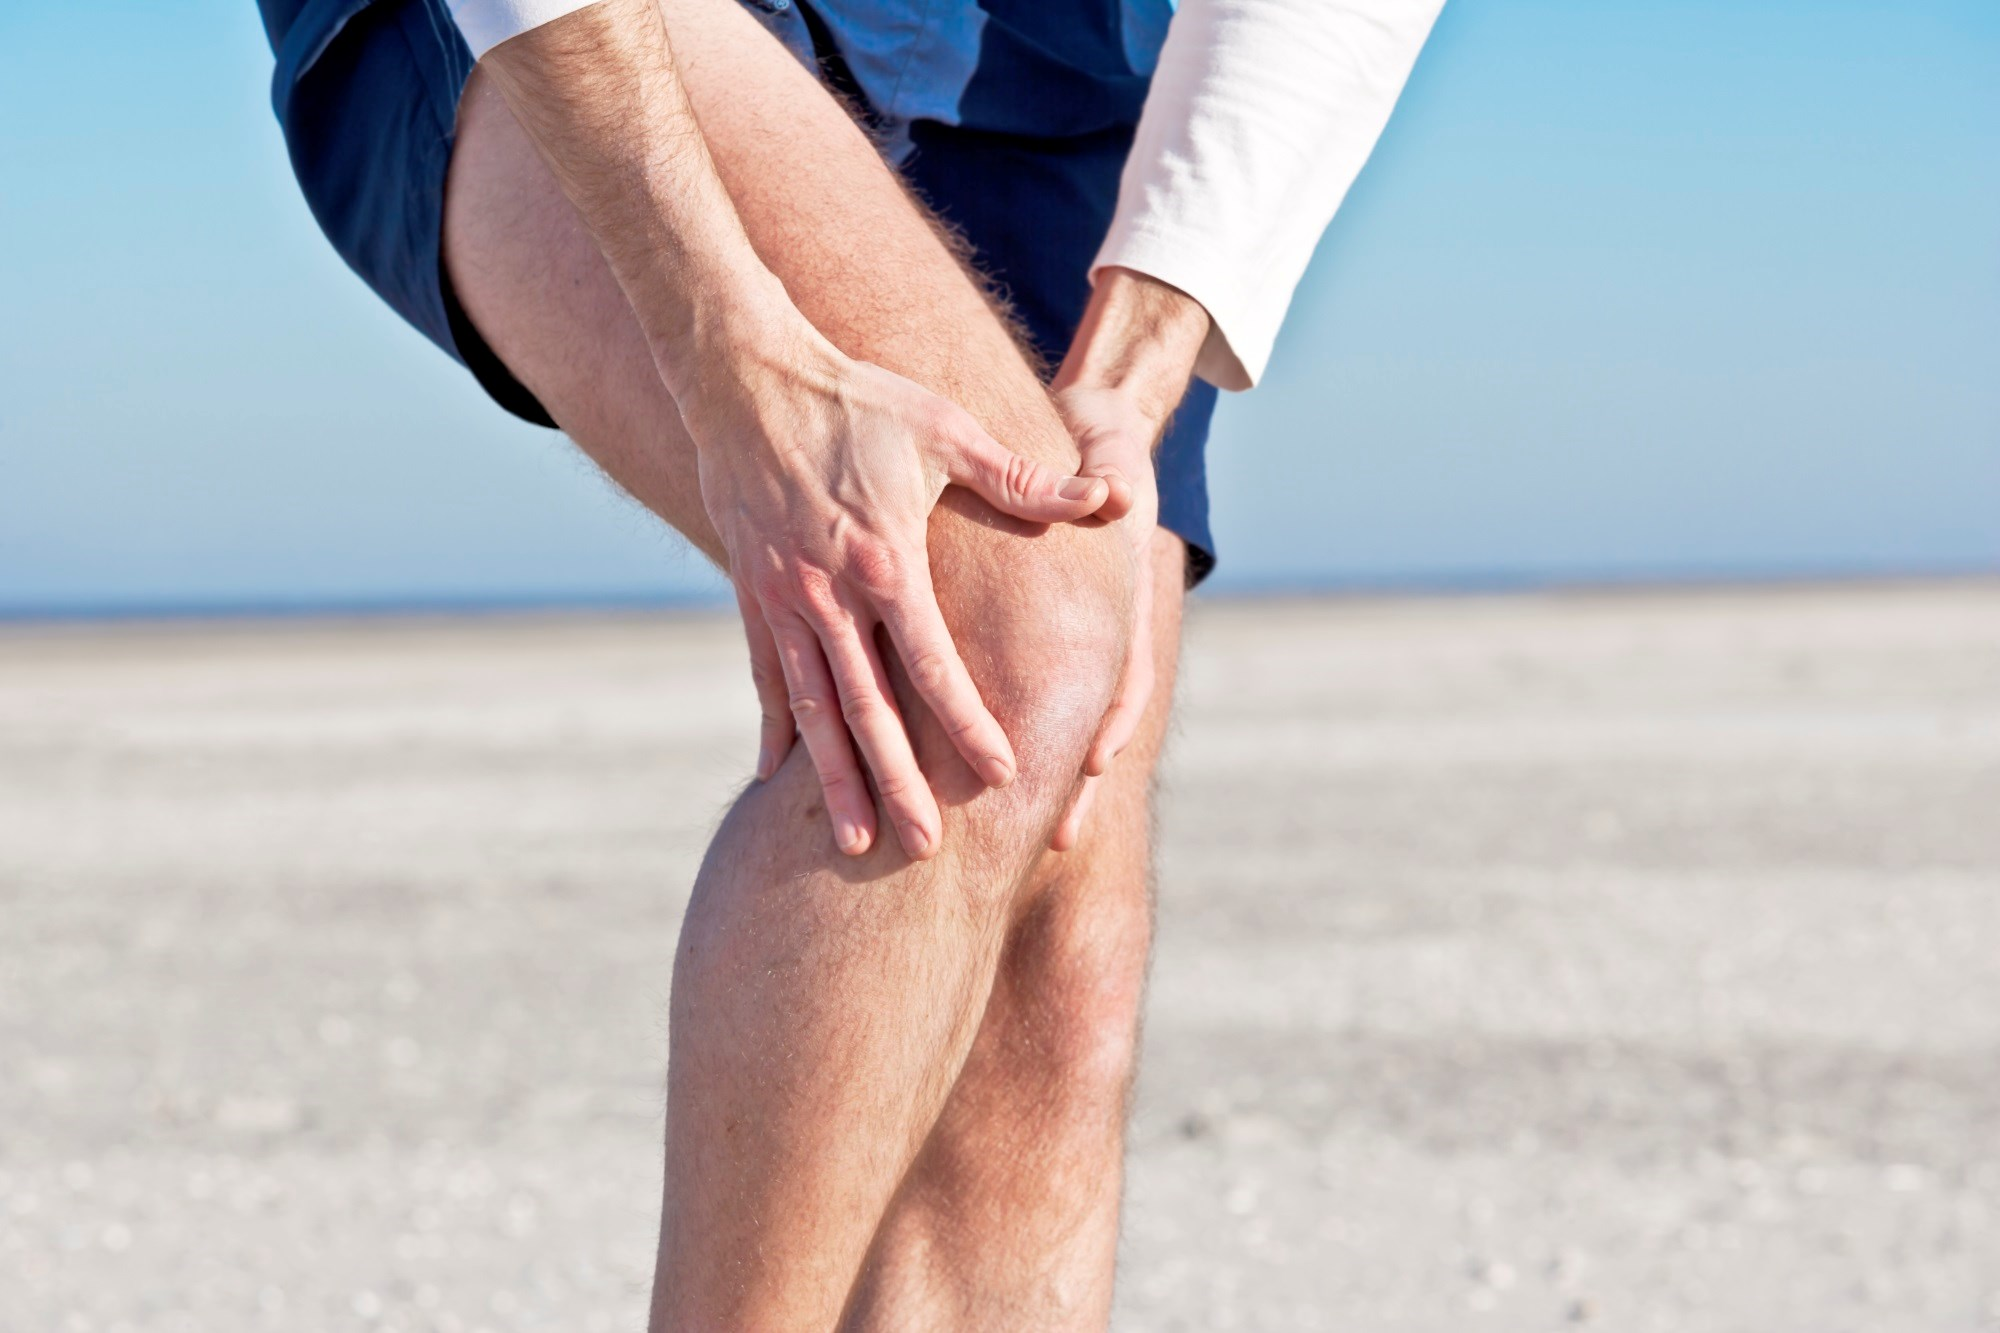 Knee Load Associated With Increased Walking Pain in Osteoarthritis